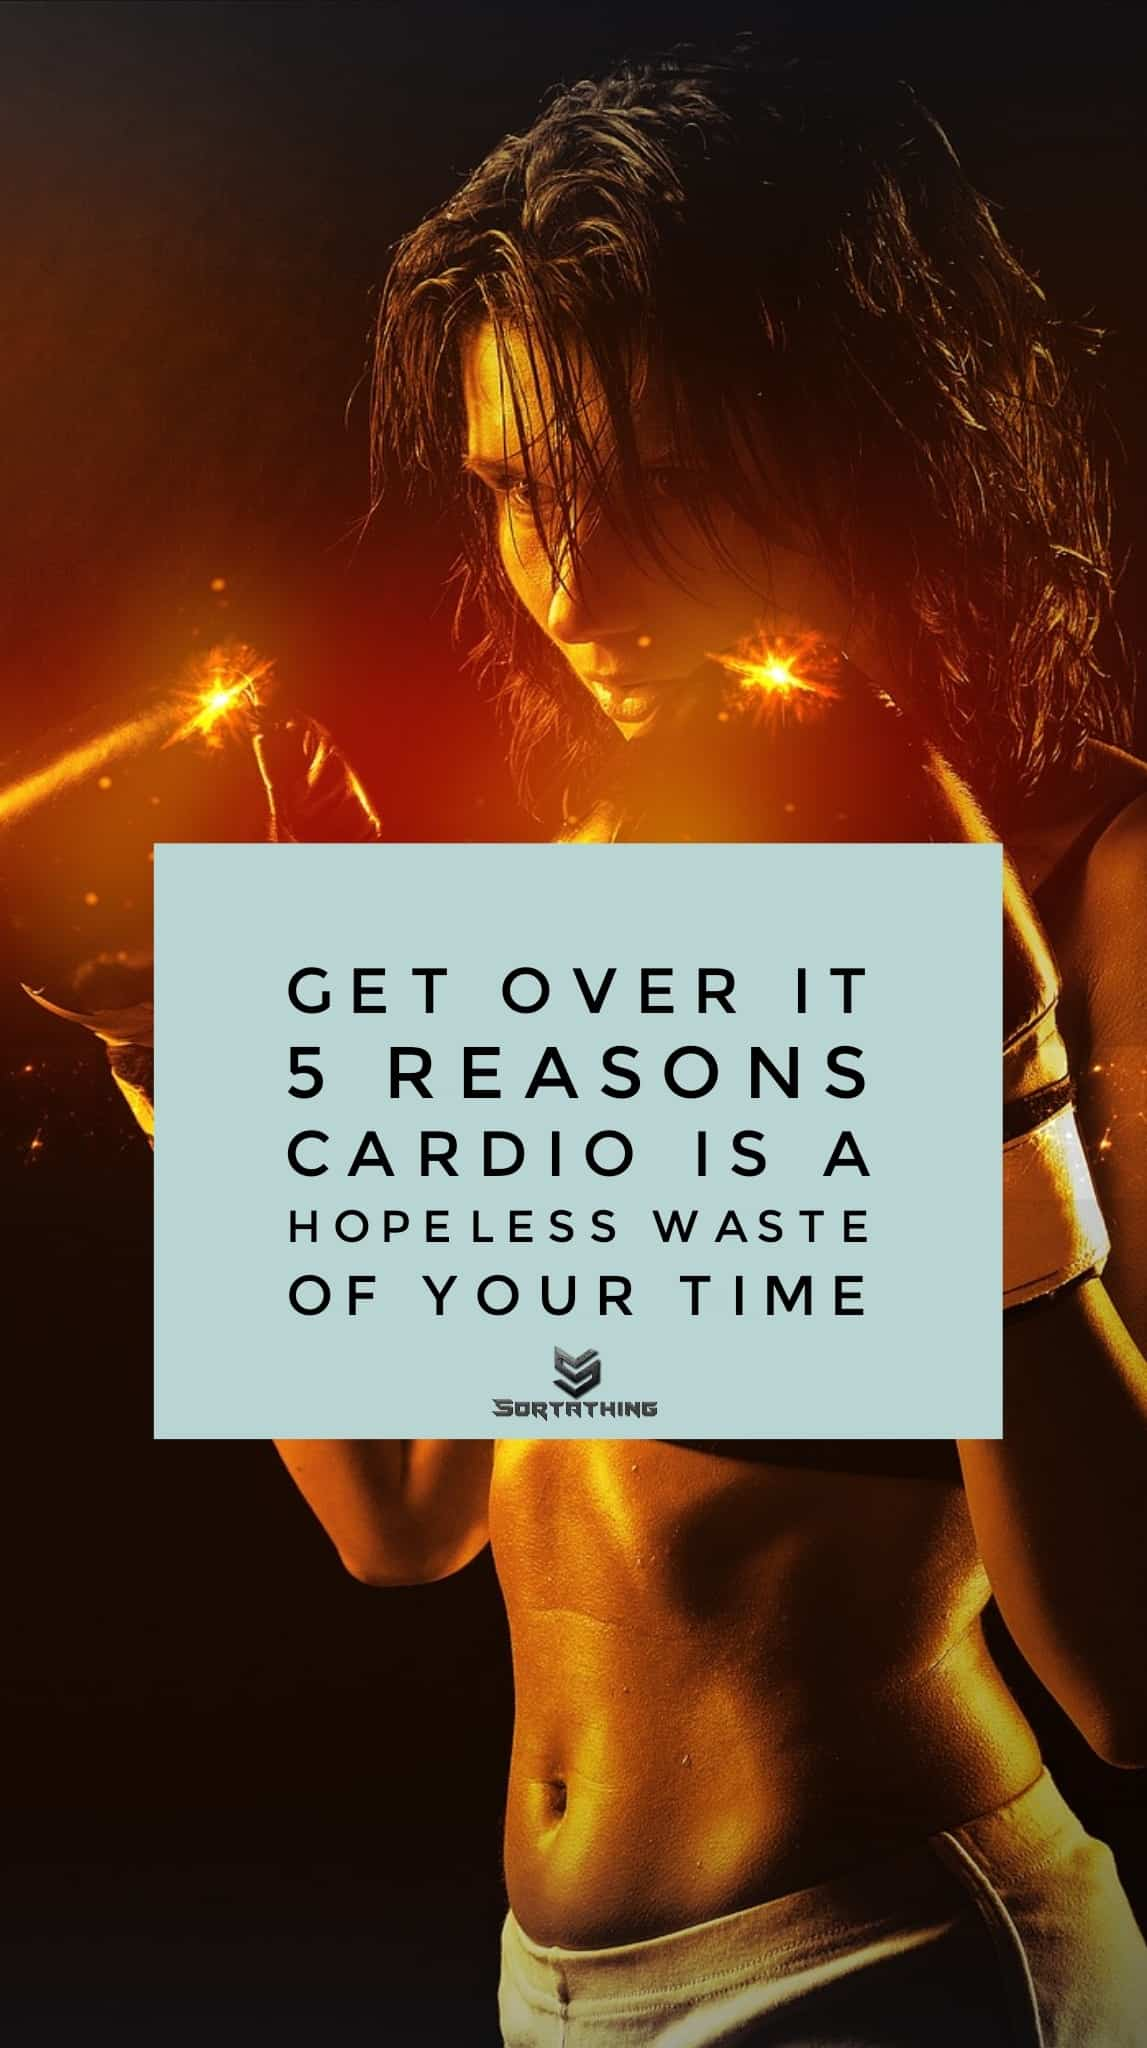 Intensity - Cardio Waste of Time